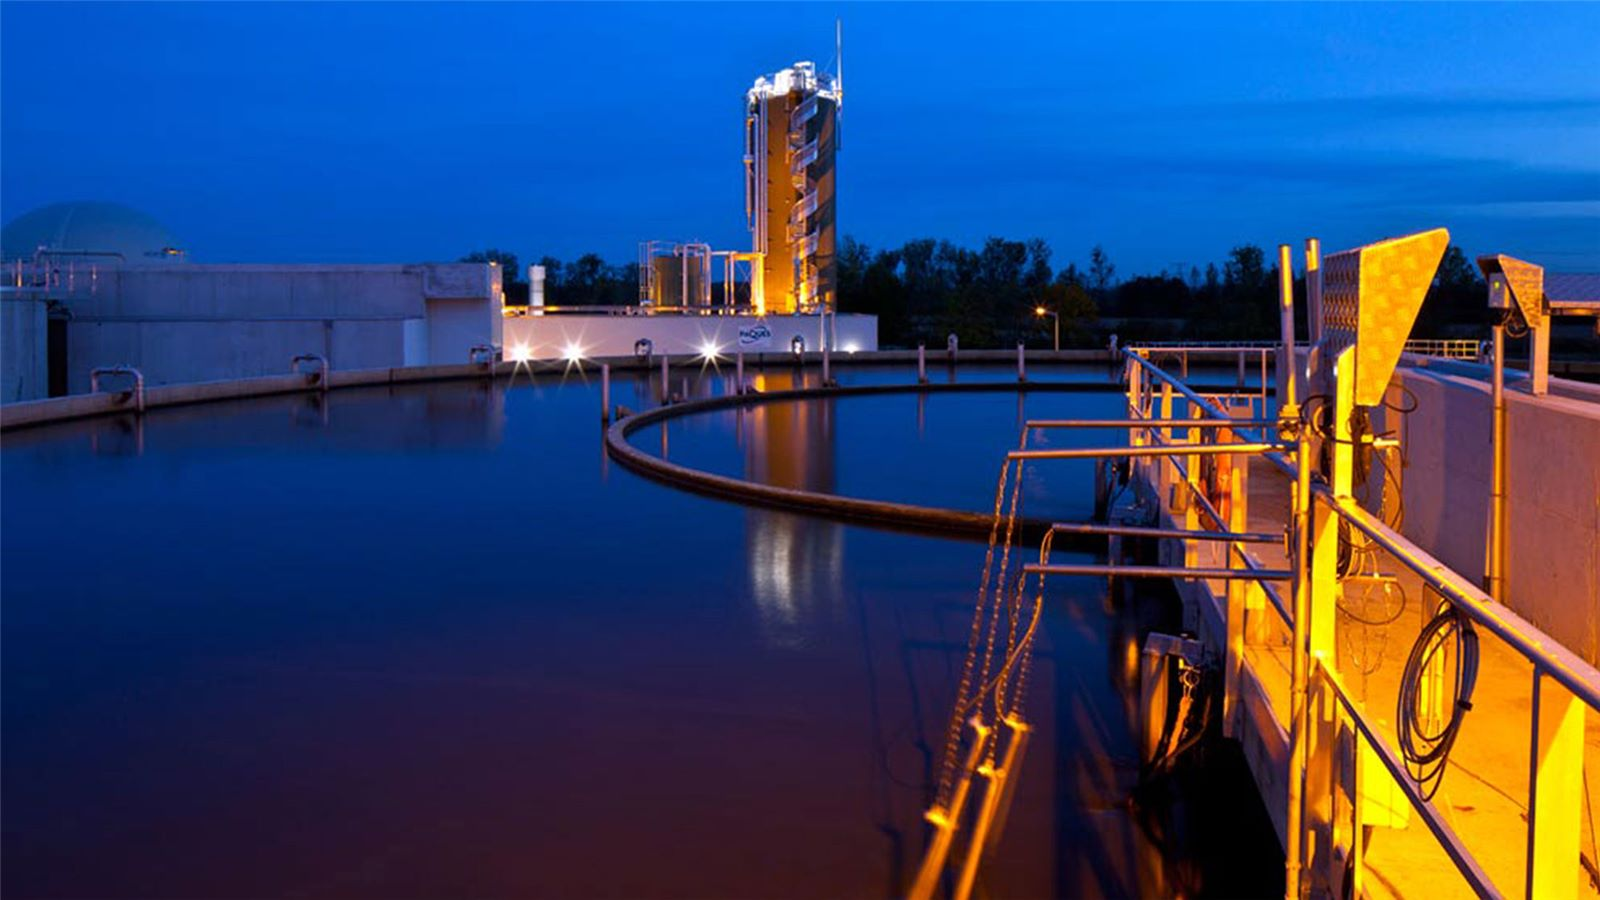 Strasbourg urban and industrial wastewater recovery